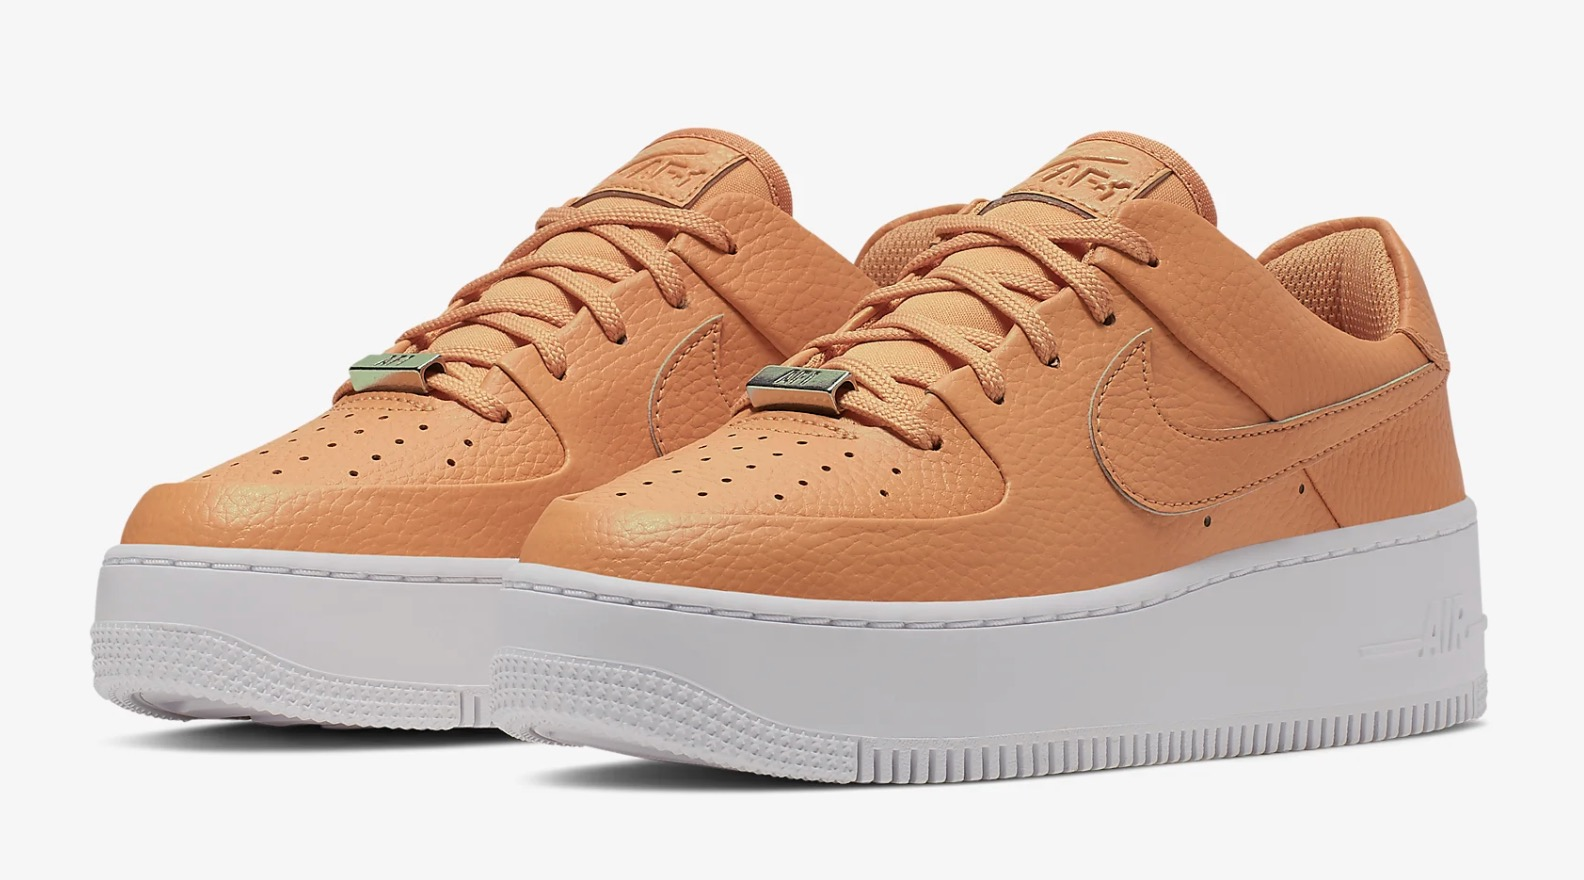 Nike's Air Force 1 Sage Gets A